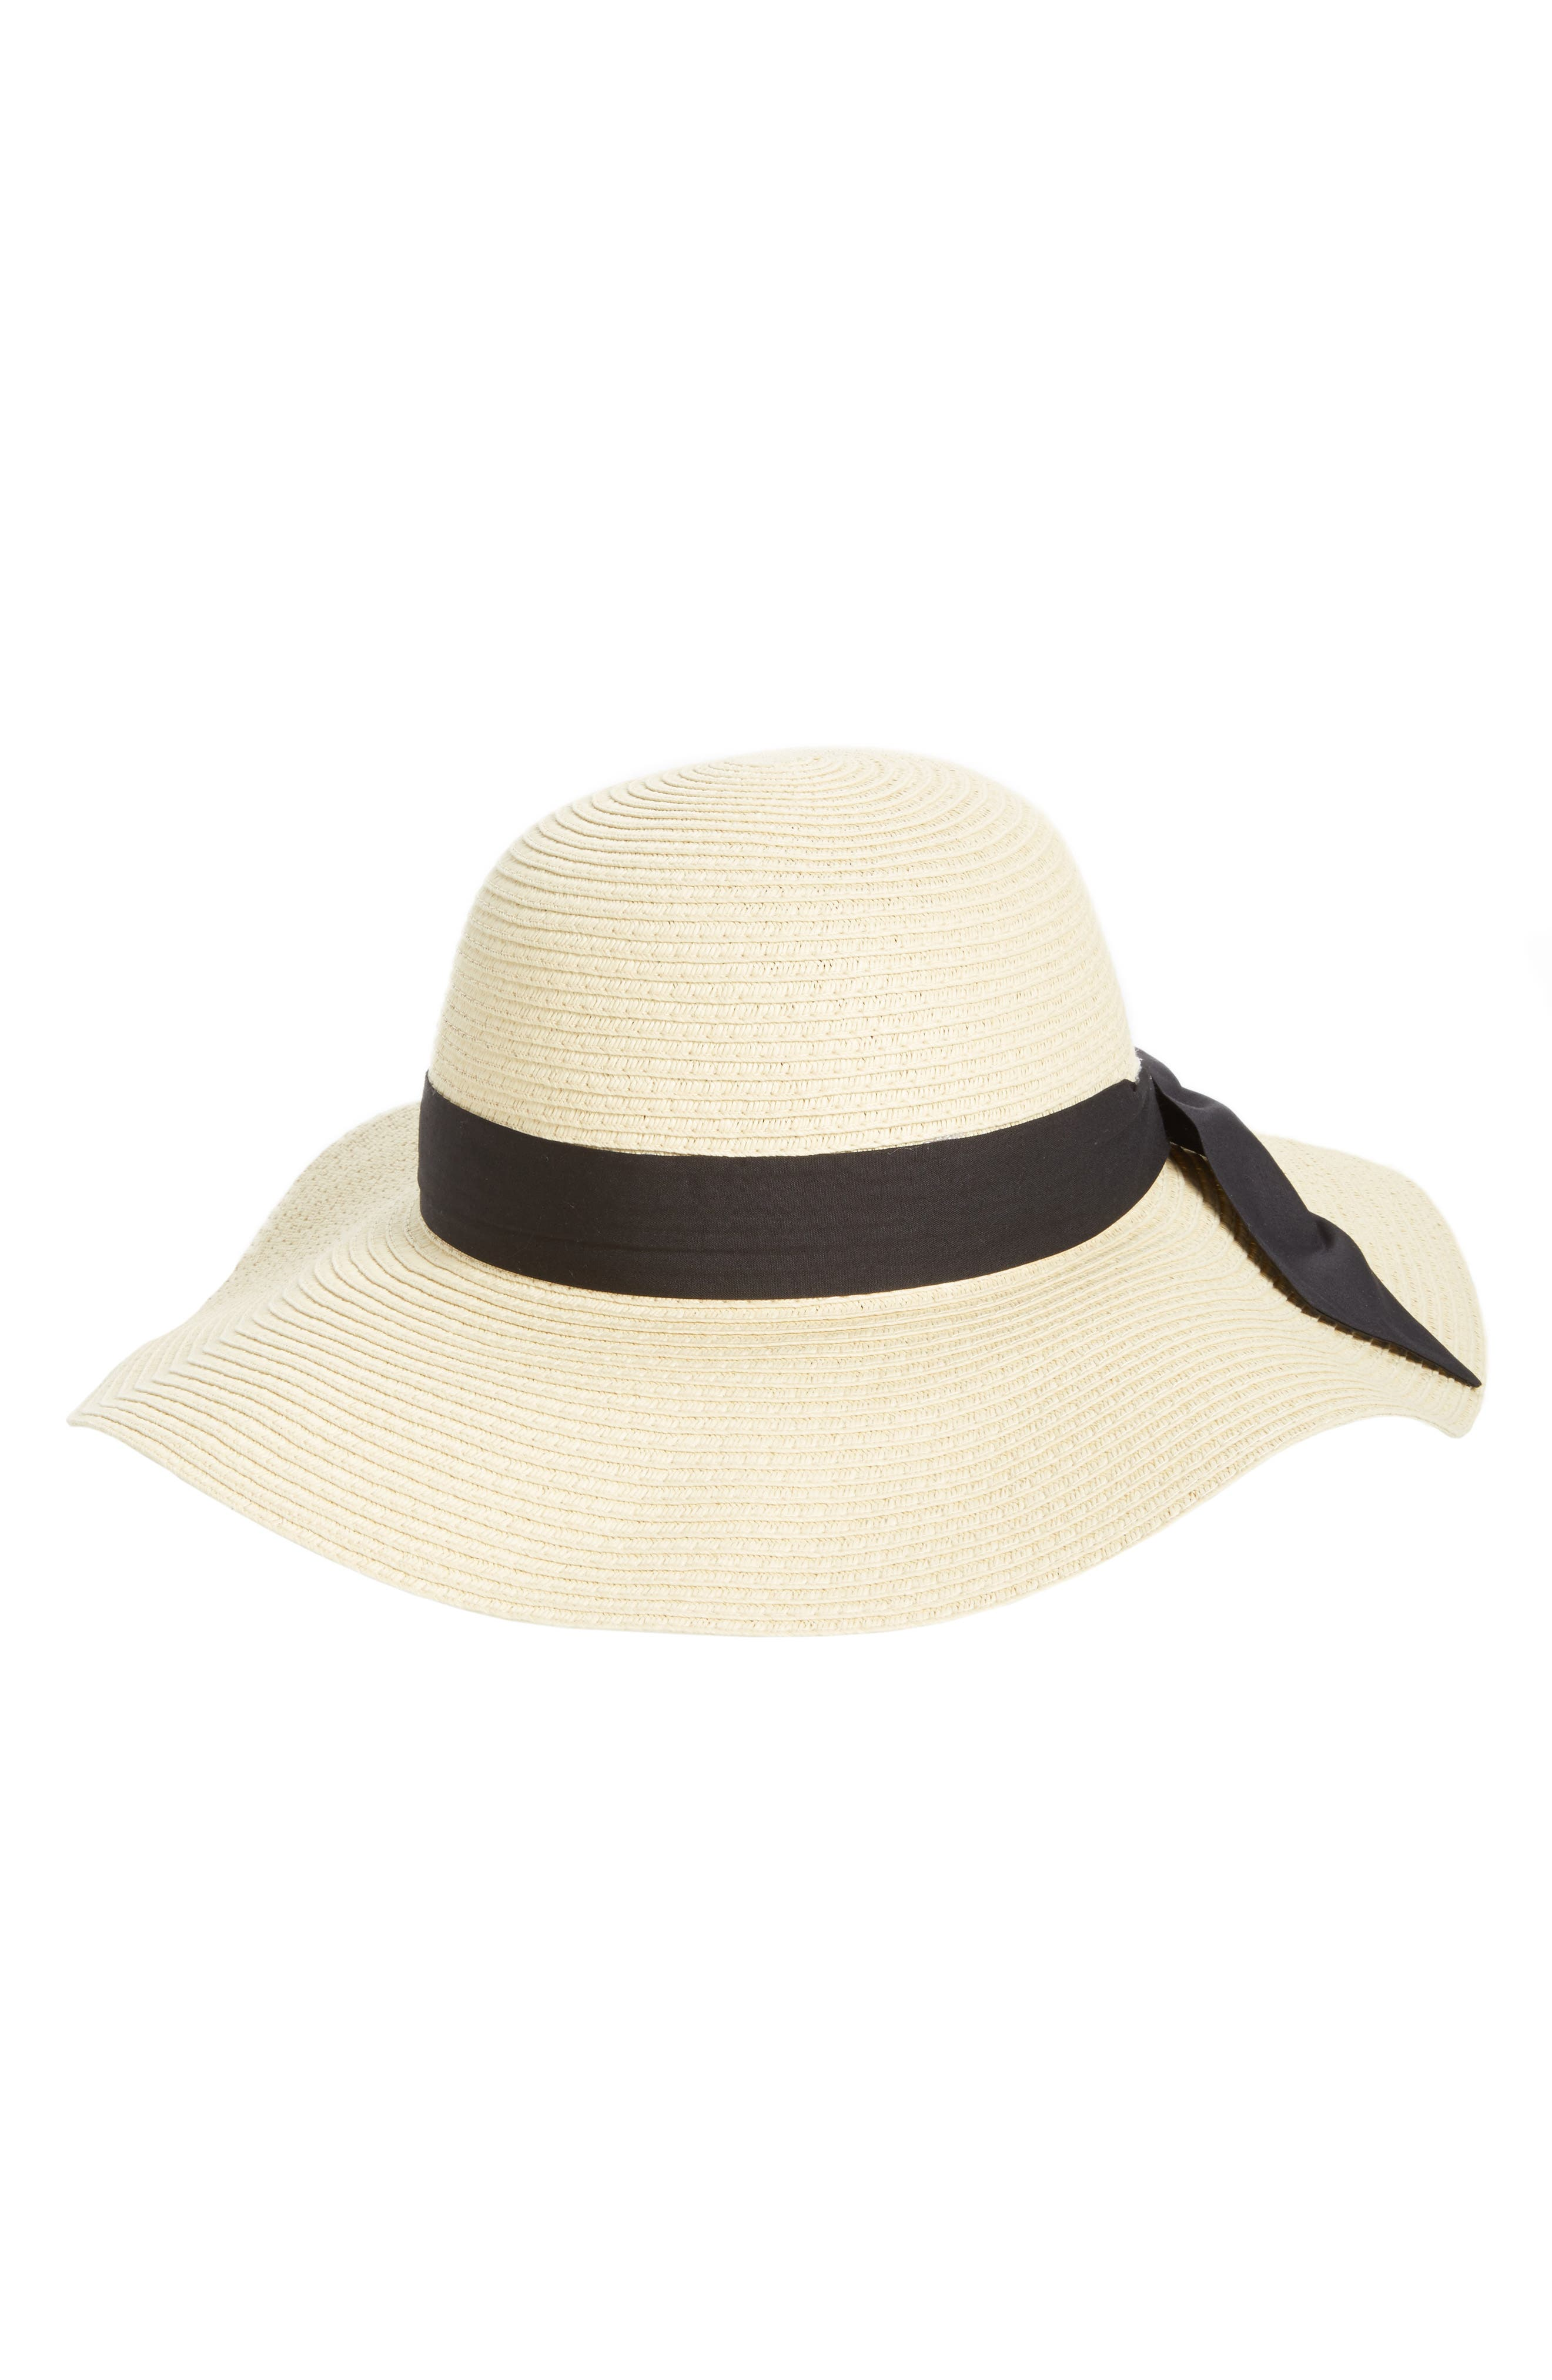 Bow Band Floppy Straw Hat,                             Main thumbnail 1, color,                             260